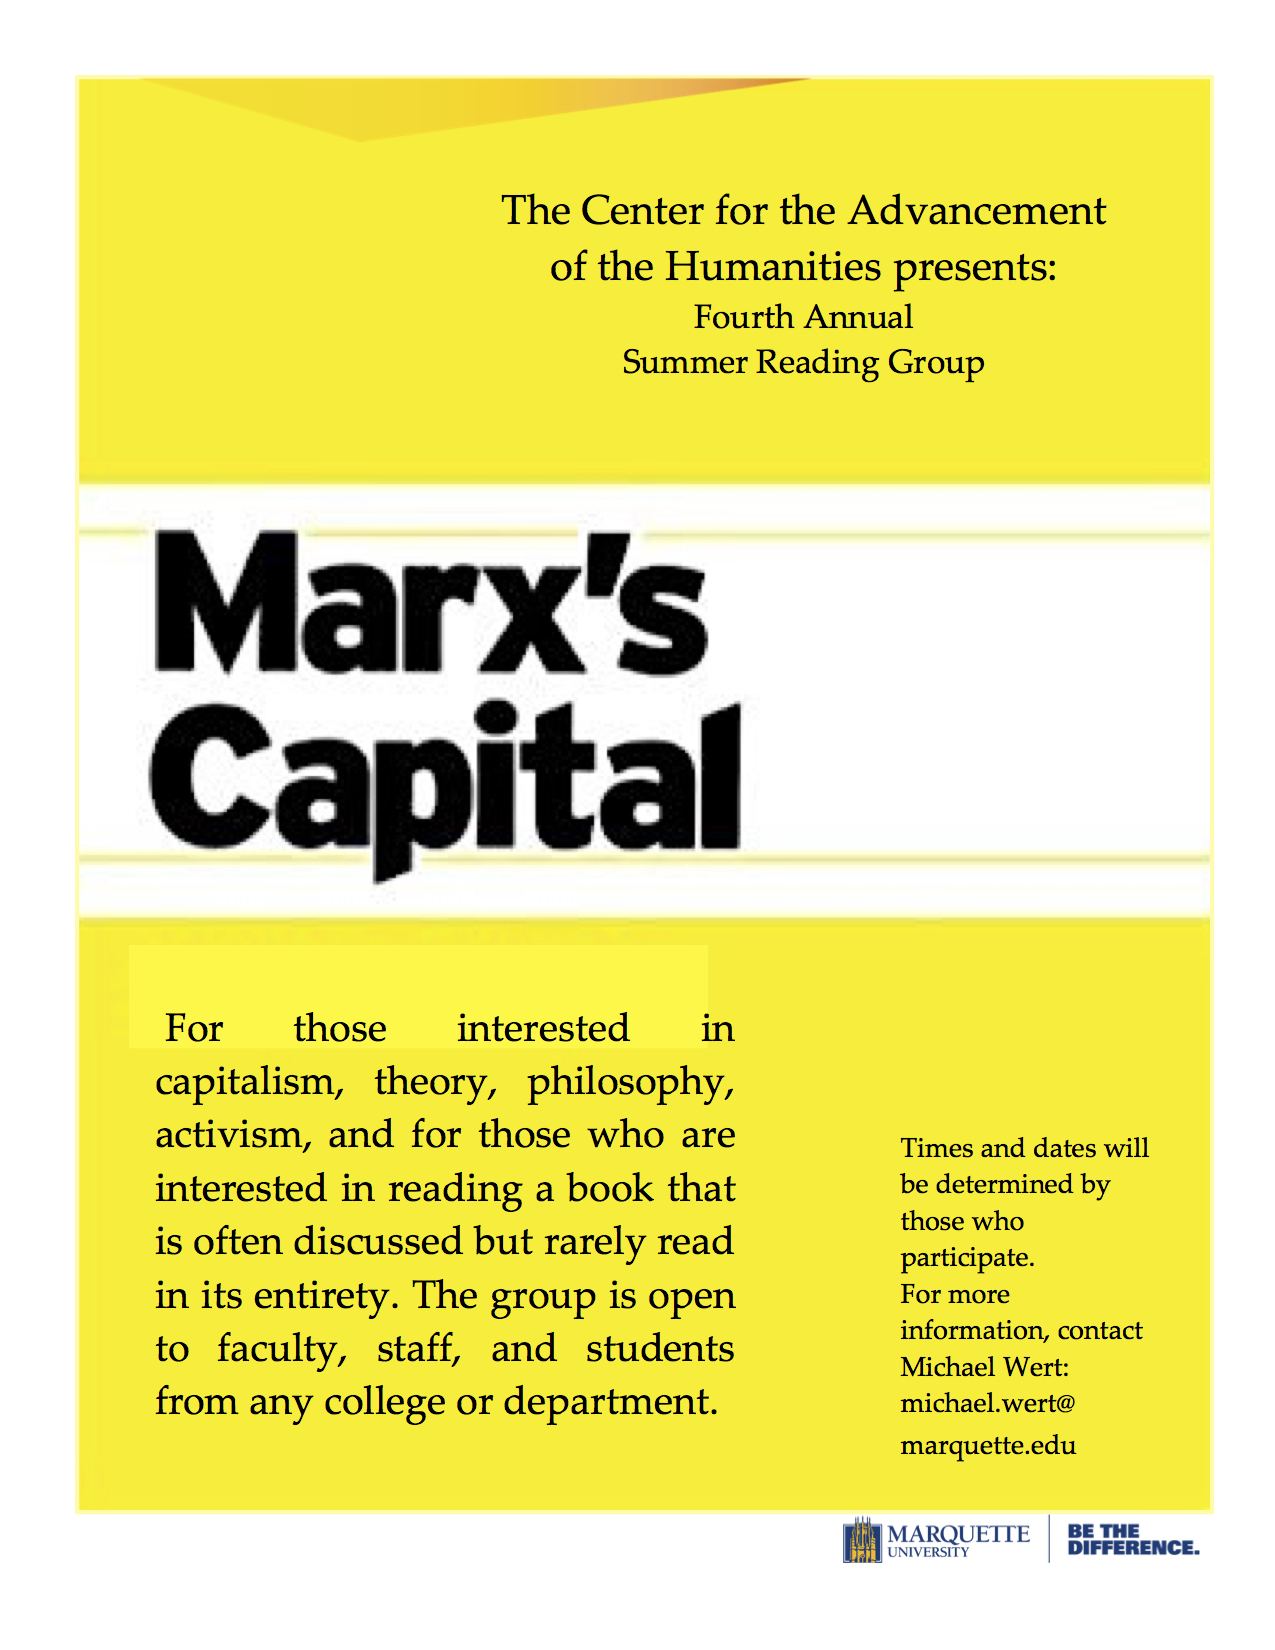 Marx Capital Reading Group flyer